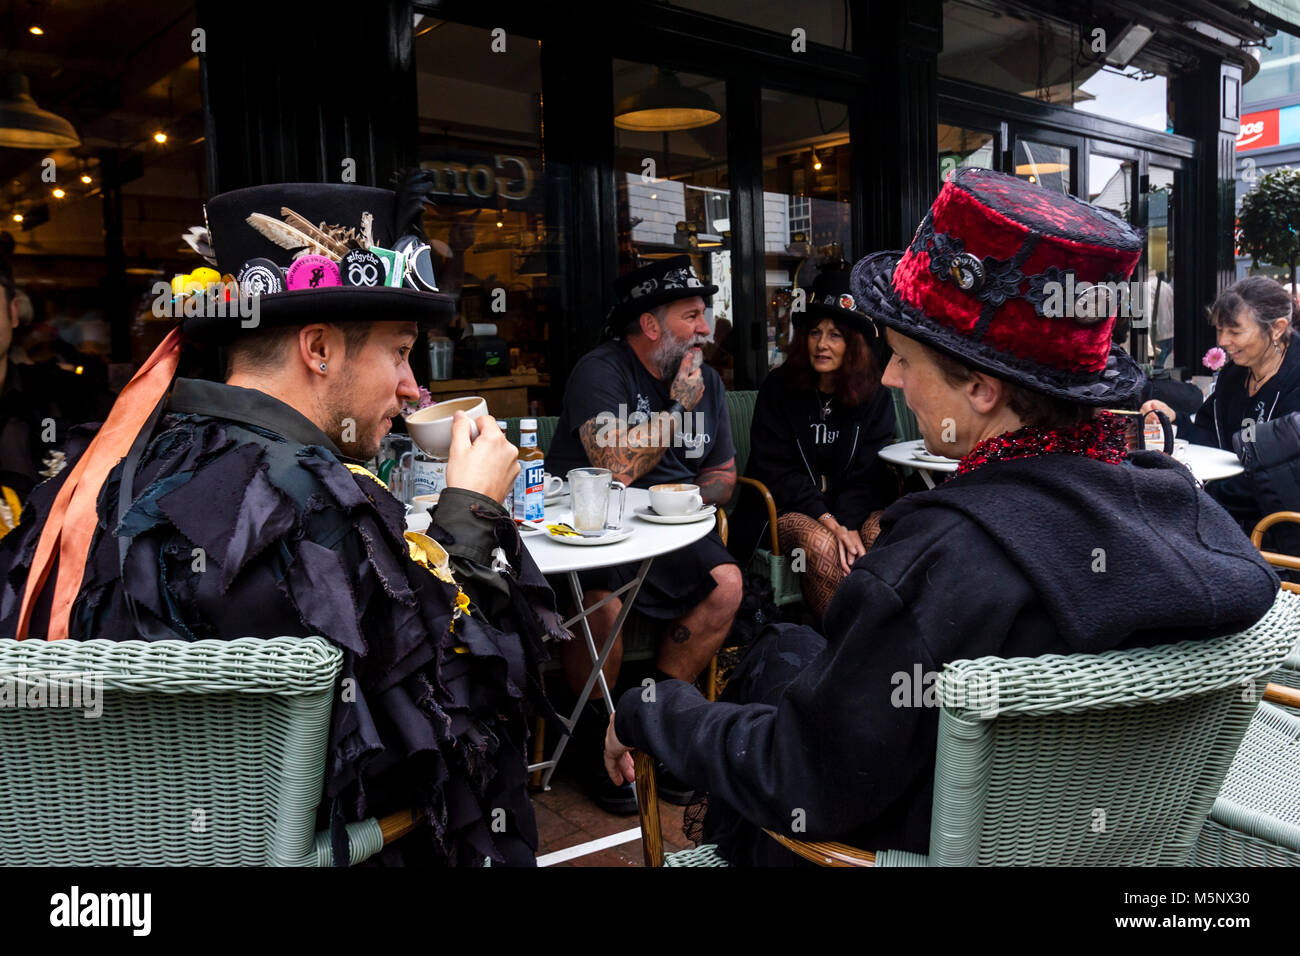 A Group Of Morris Dancers Drinking Coffee In A Cafe Before Performing At The Annual Lewes Folk Festival, Lewes, - Stock Image